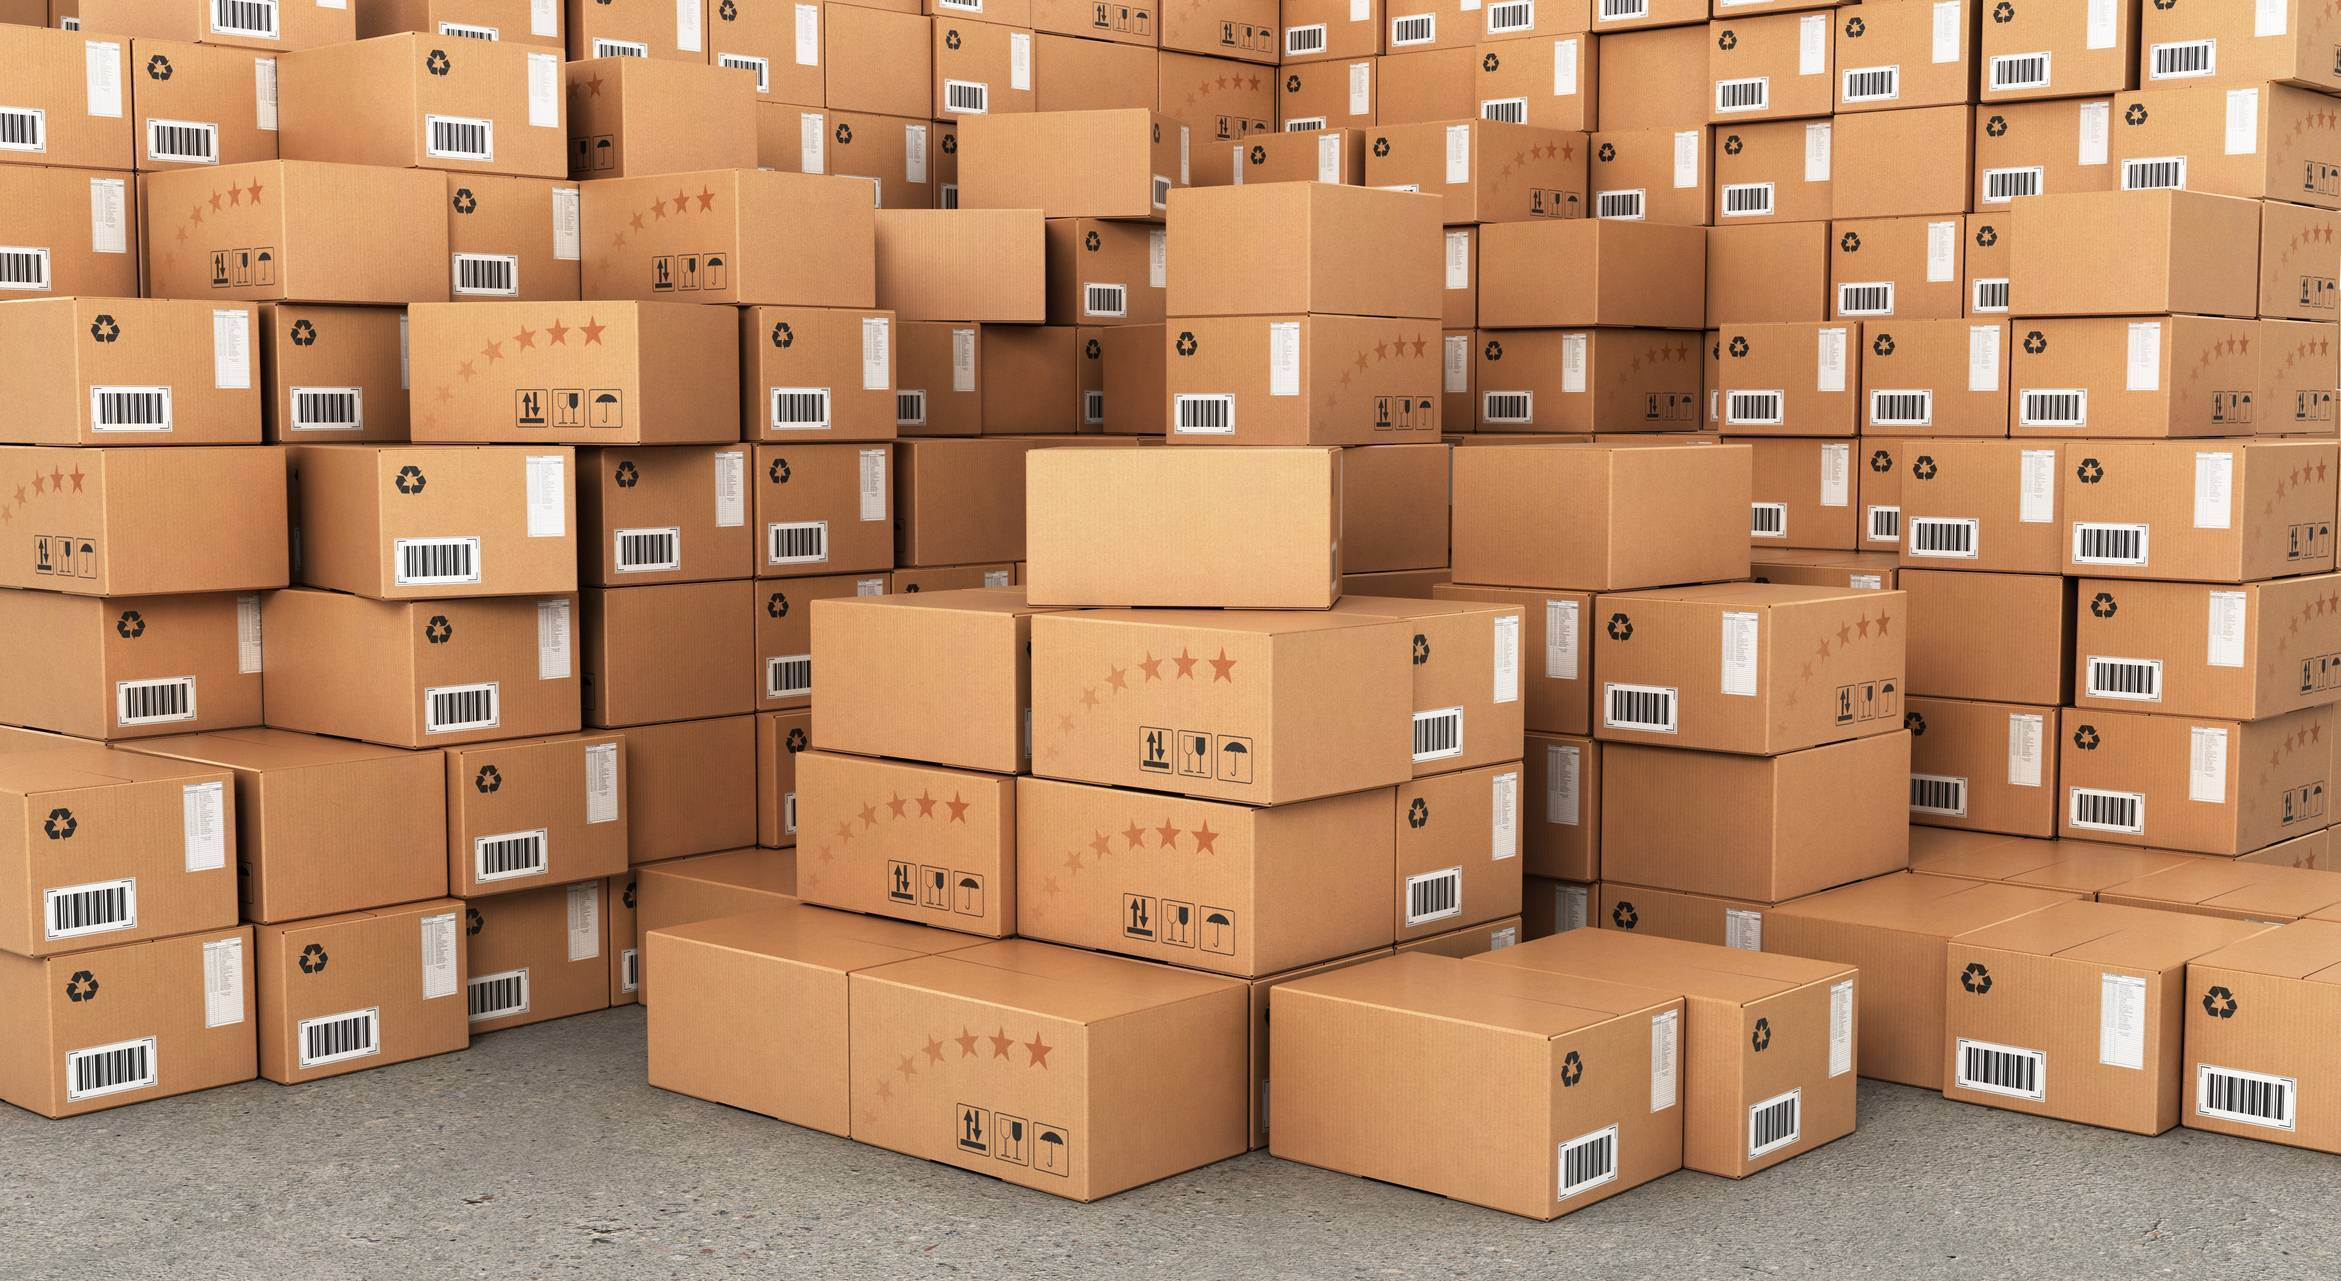 Large stacks of cardboard boxes featuring ink and labels.